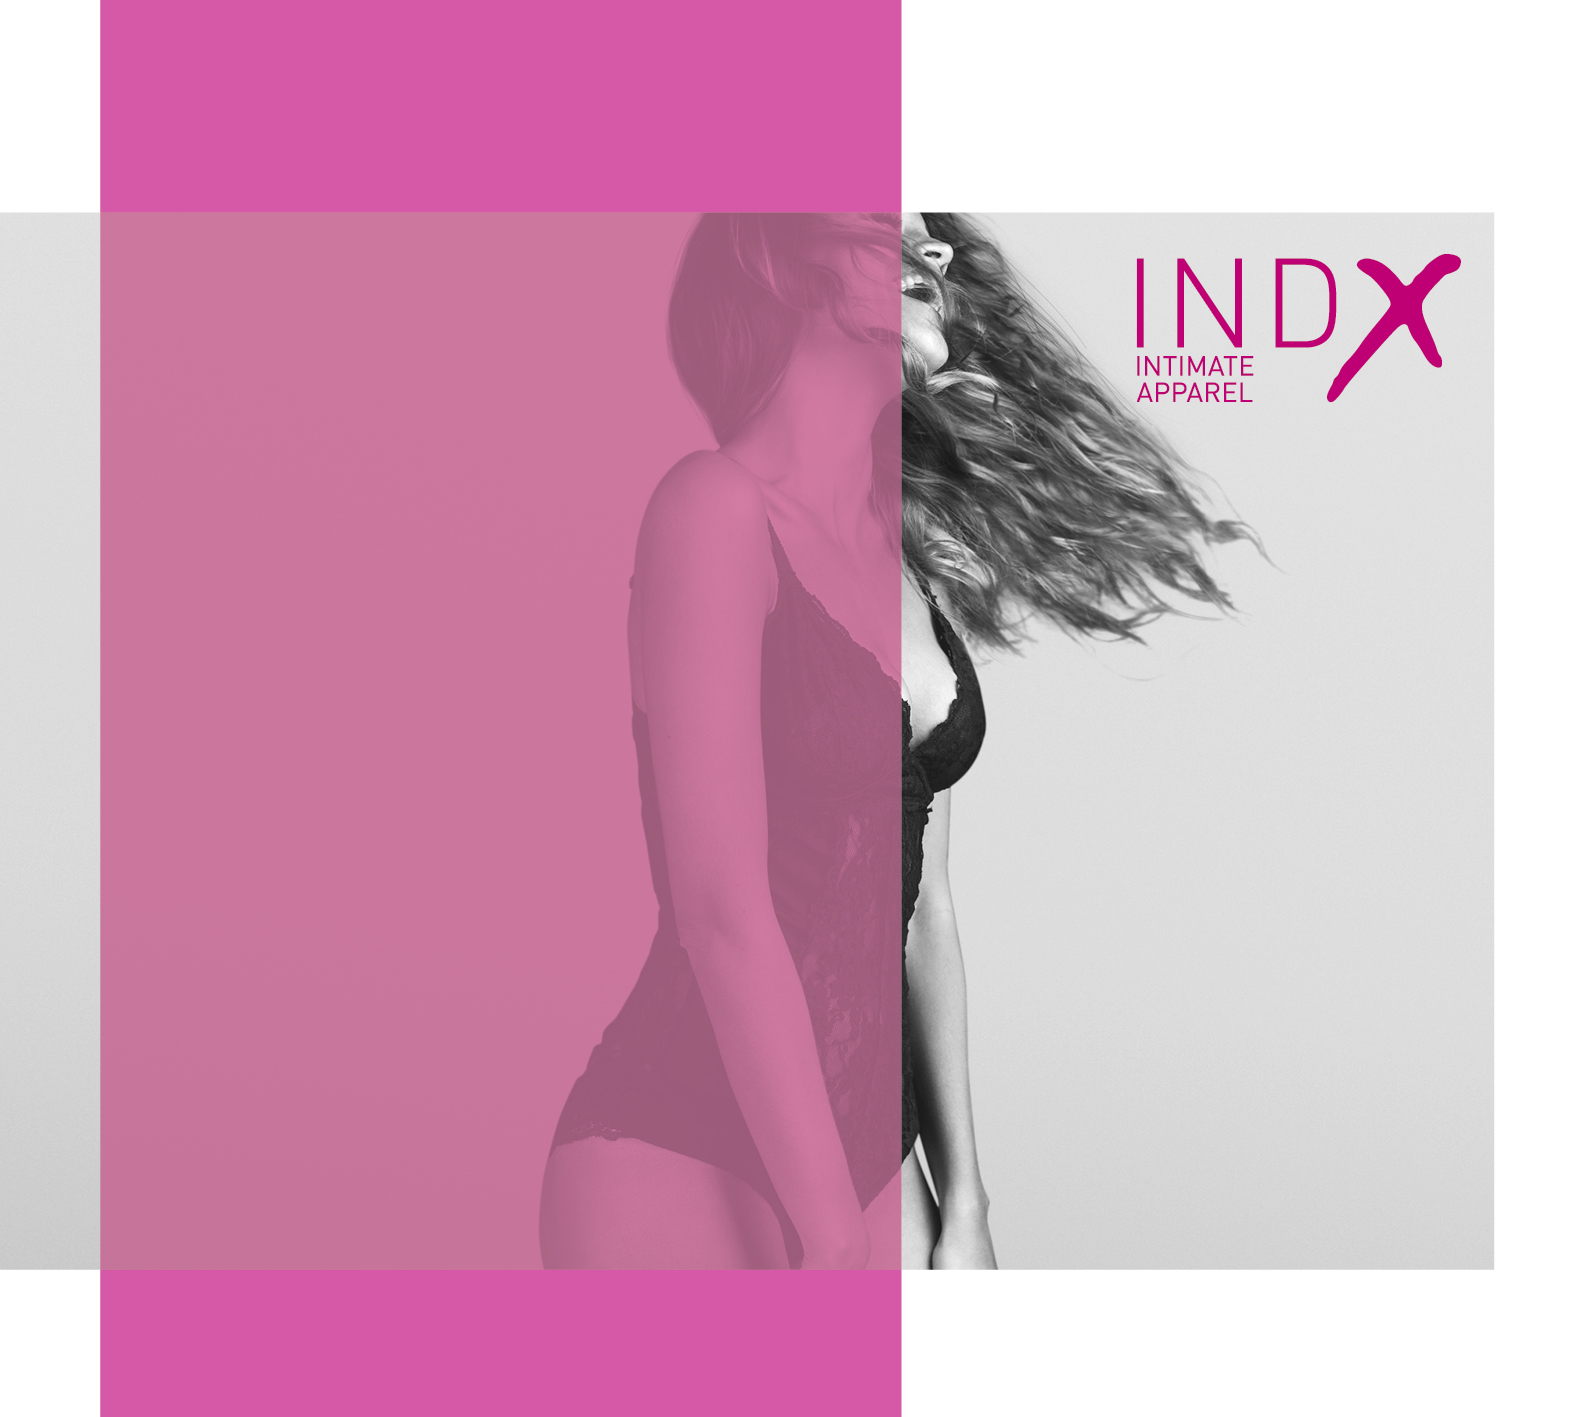 INDX Intimate Apparel 2020